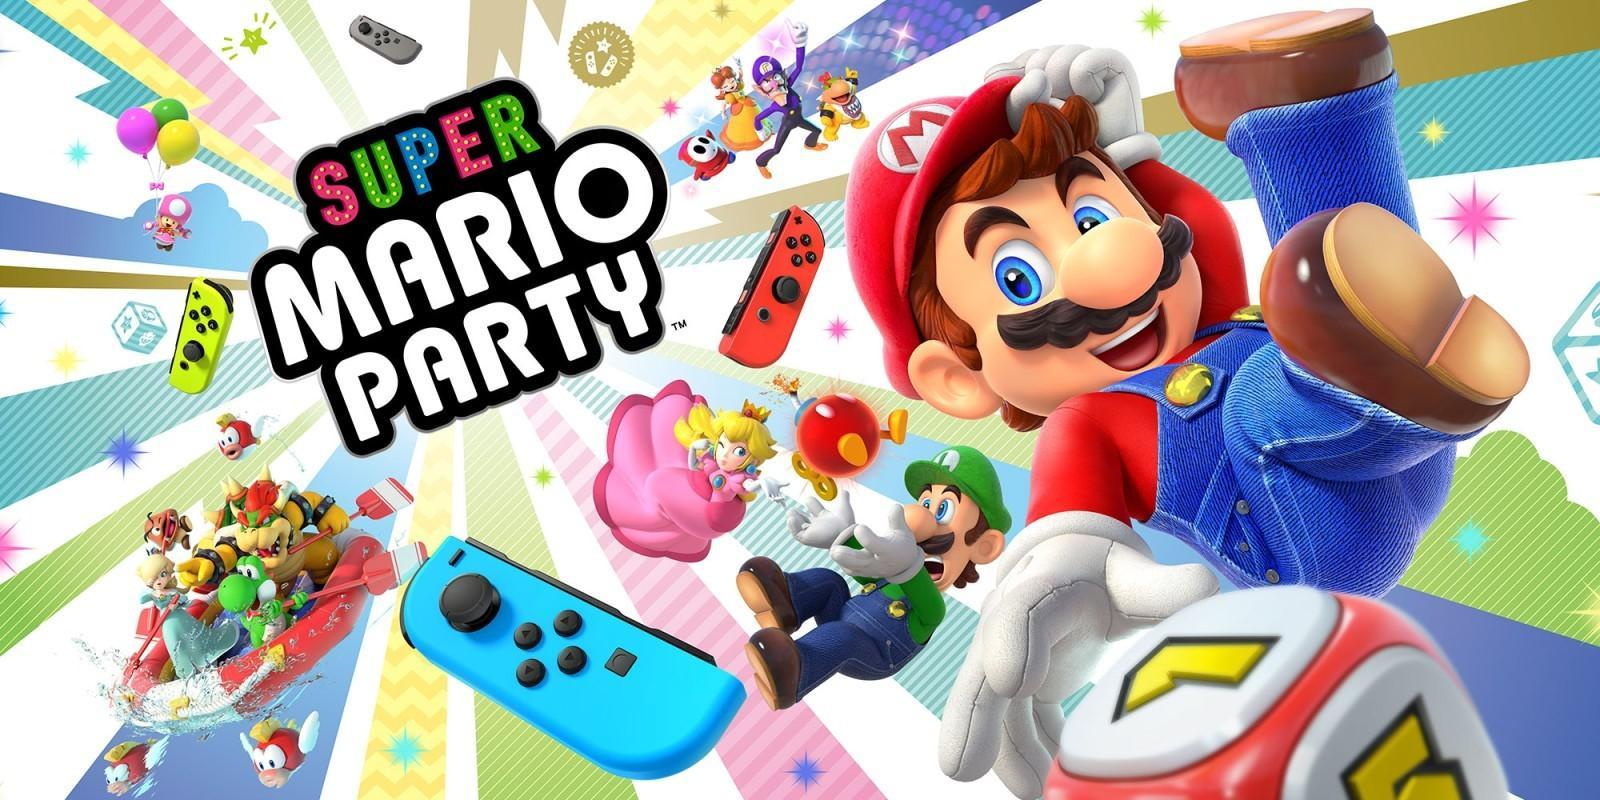 Spill Super Mario Party med venner over internett!